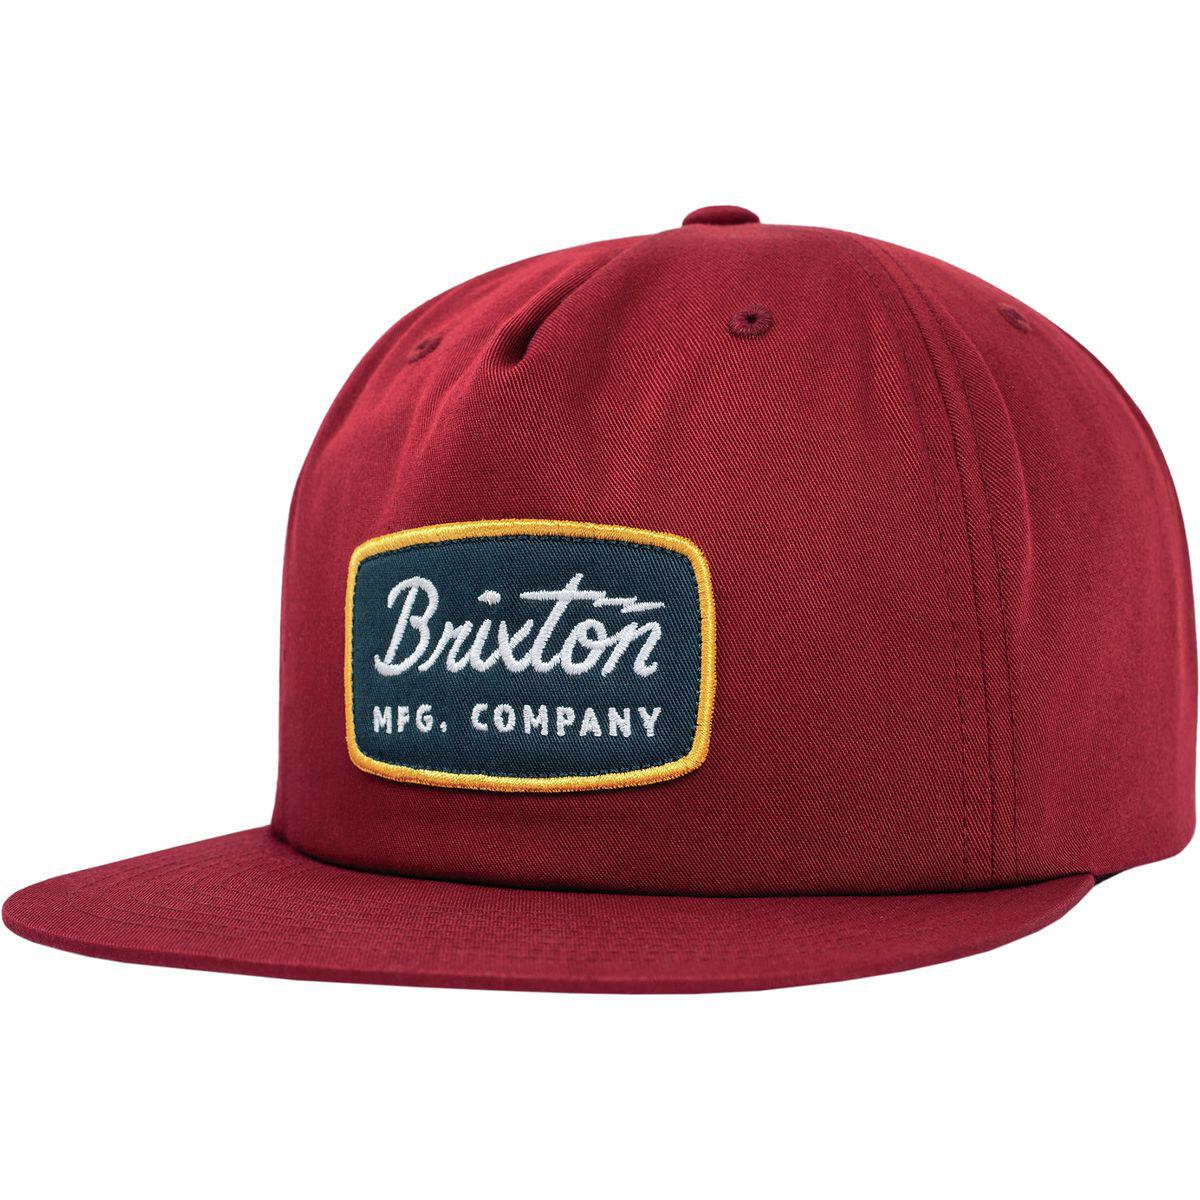 a72ef71f0e9 Lyst - Brixton Jolt Hp Snapback Hat in Red for Men